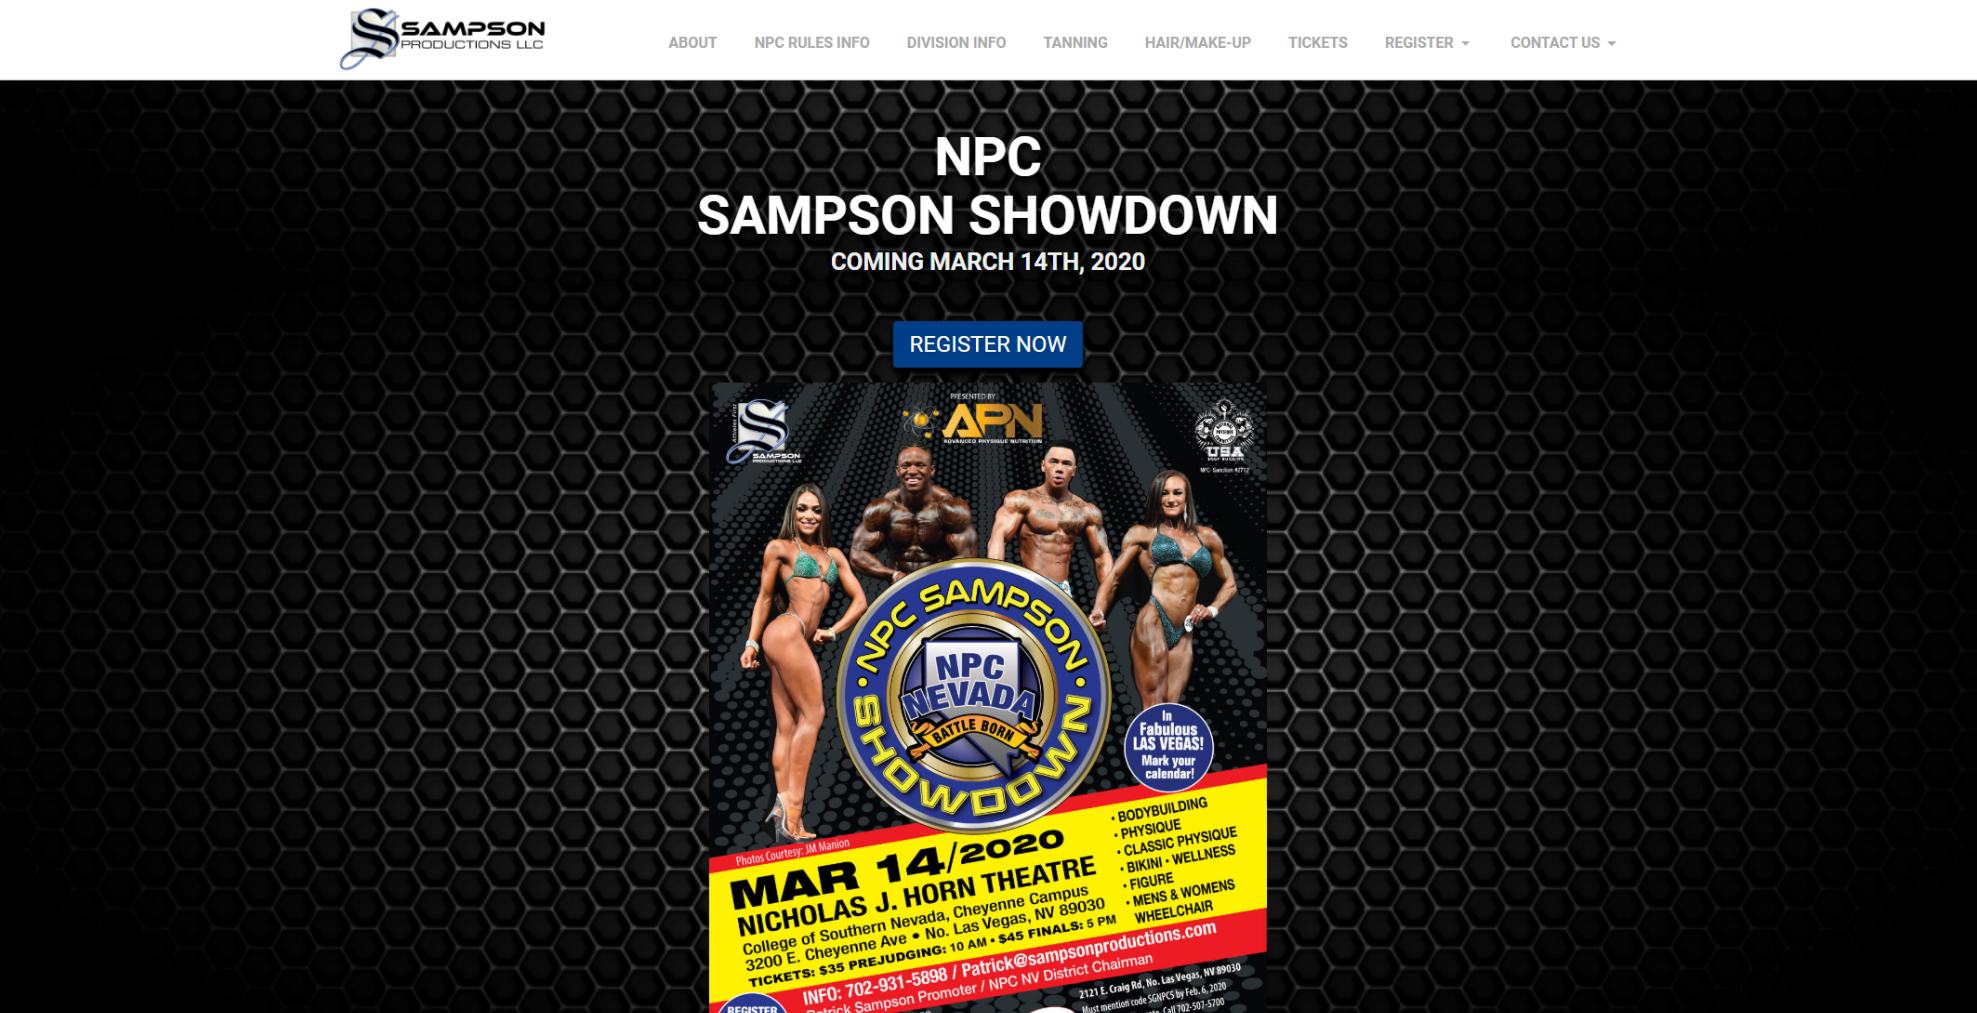 Sampsons Productions website design by 702 Pros